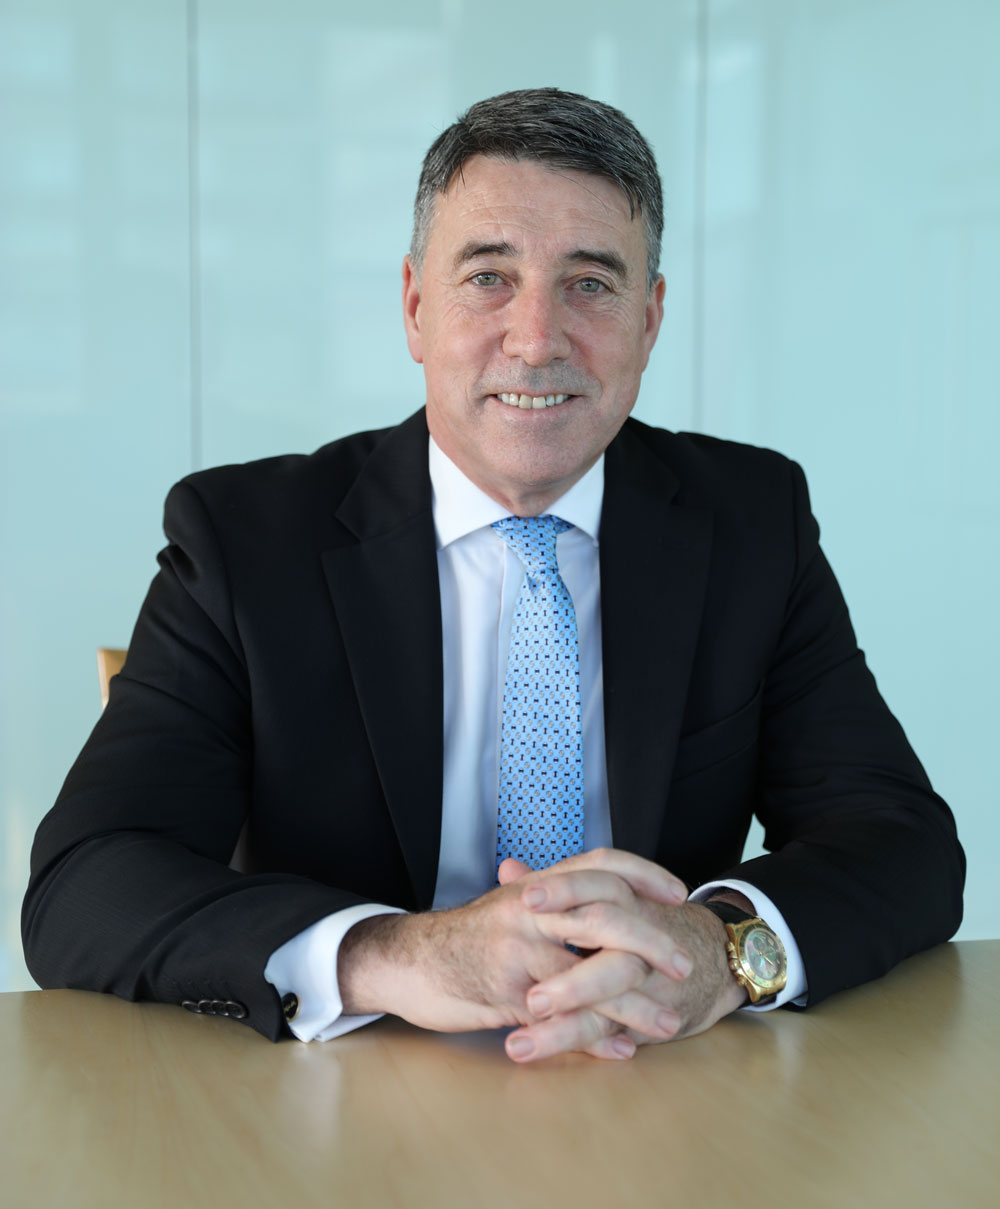 CEO of Santander UK to speak in Nottingham on importance of support for SMEs and the Regional Economy